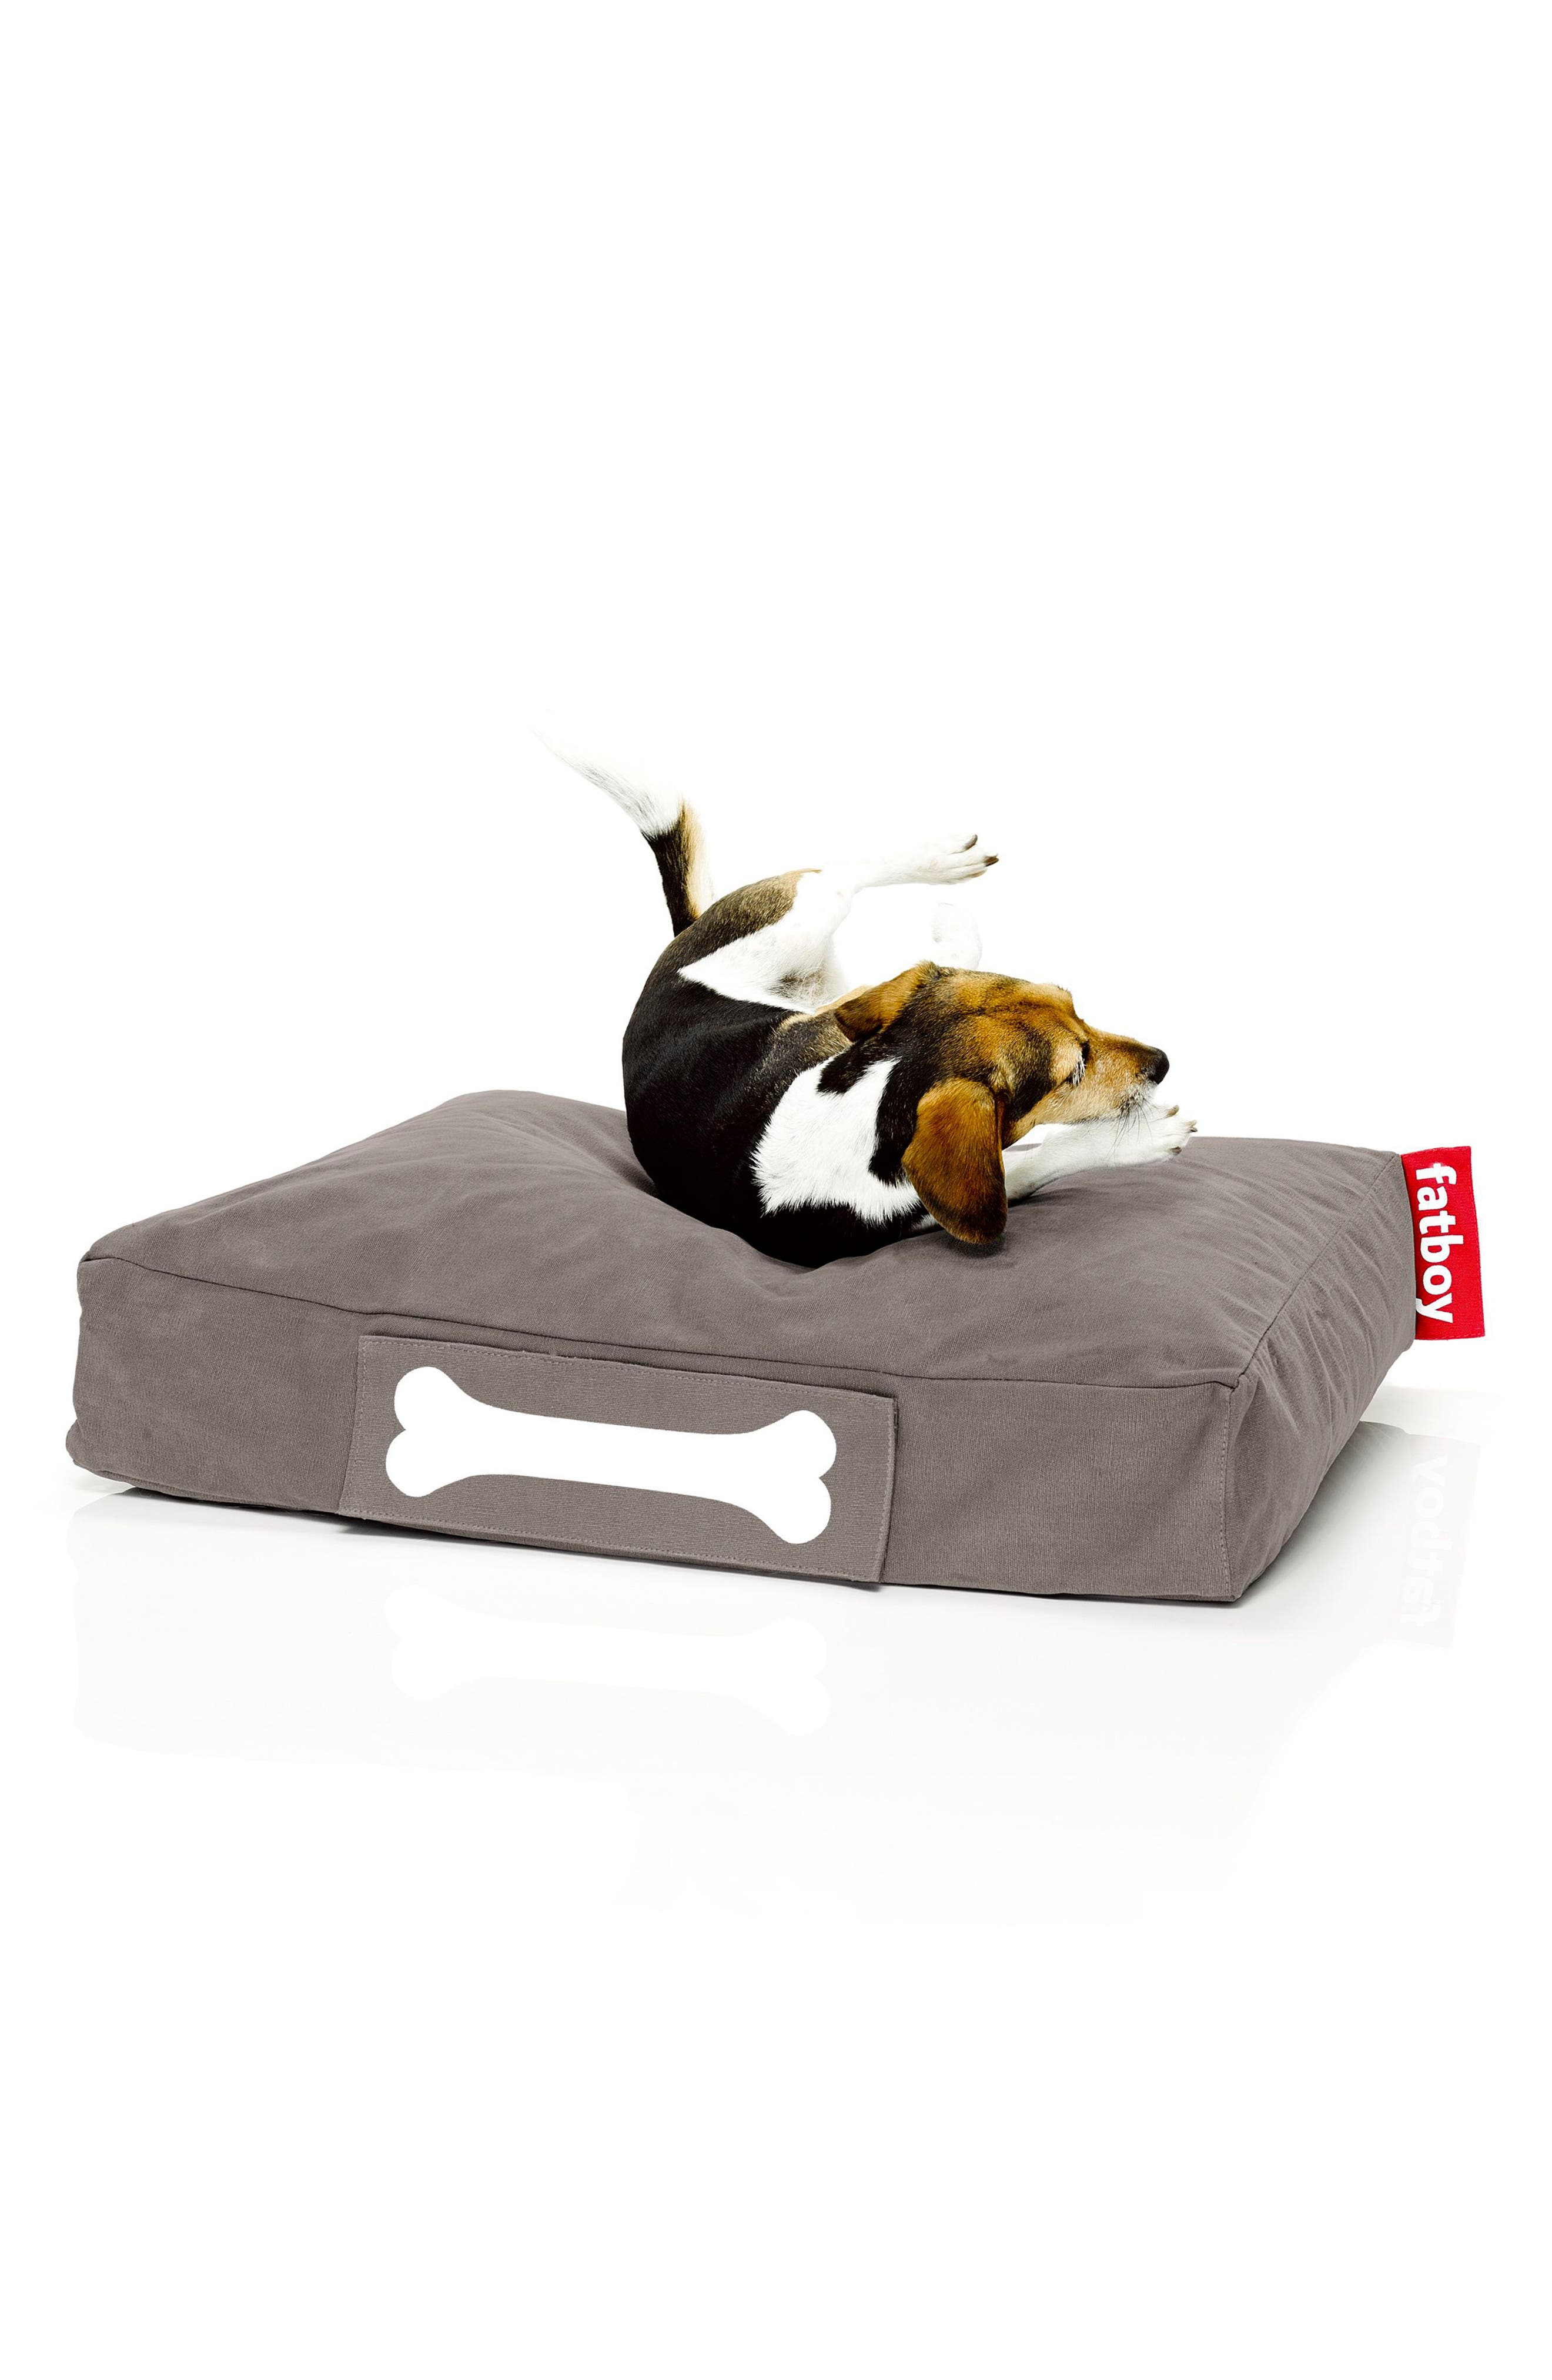 Doggielounge - Stonewashed Pet Bed,                             Alternate thumbnail 2, color,                             Taupe